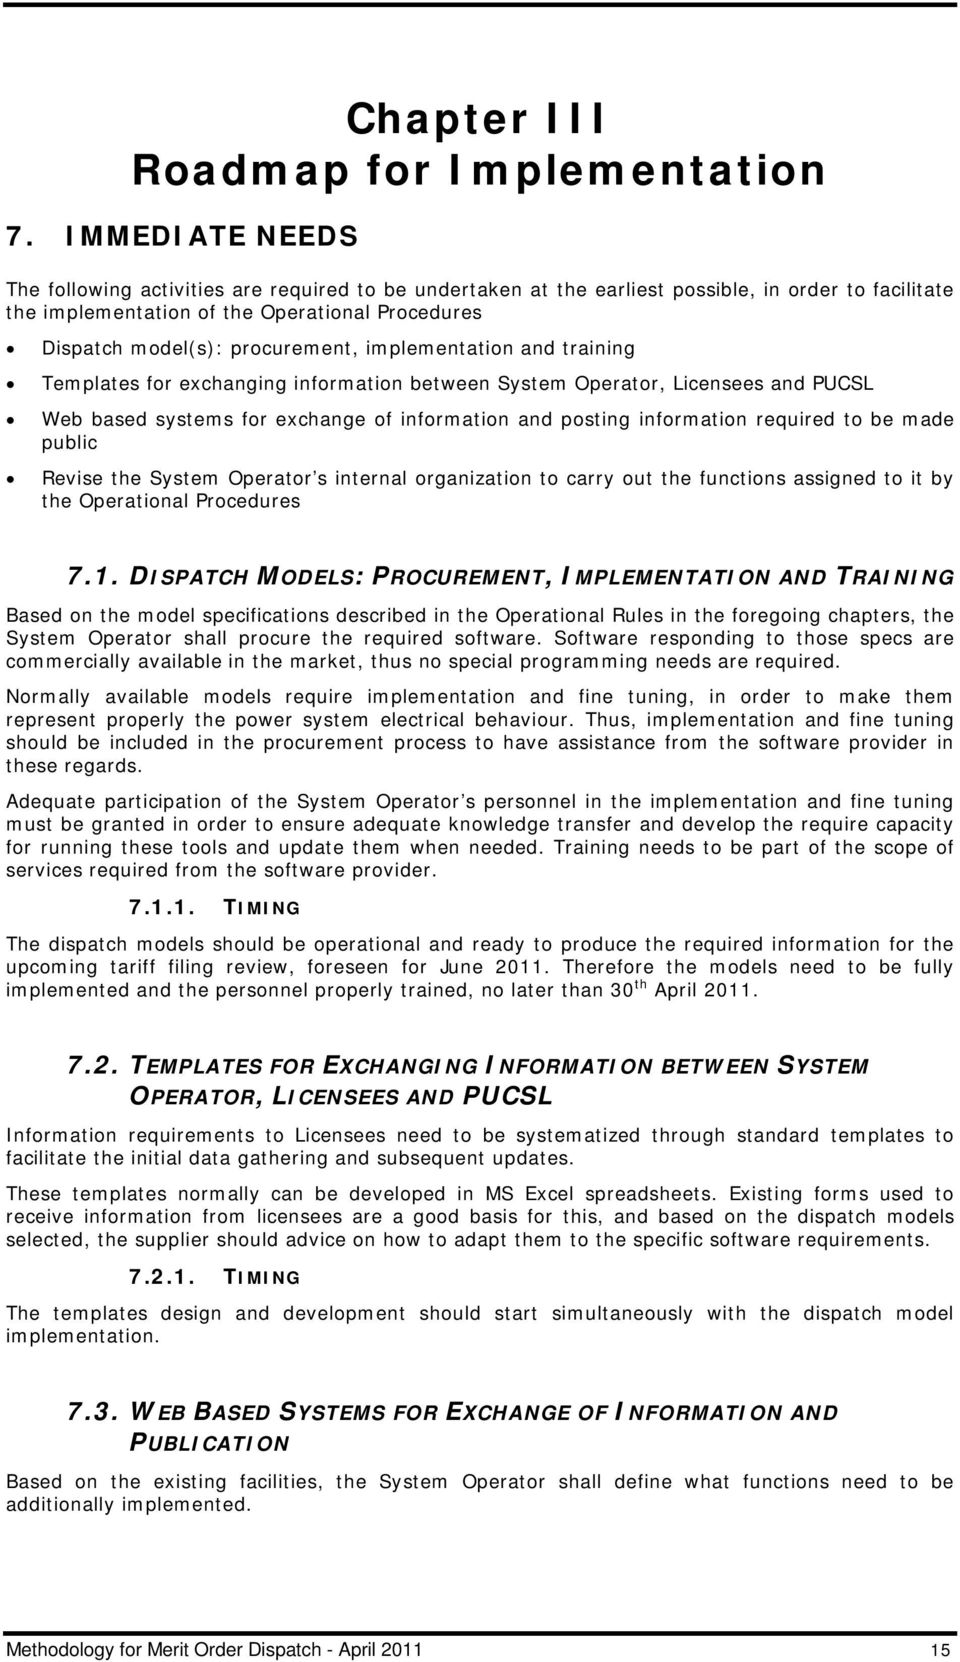 procurement, implementation and training Templates for exchanging information between System Operator, Licensees and PUCSL Web based systems for exchange of information and posting information